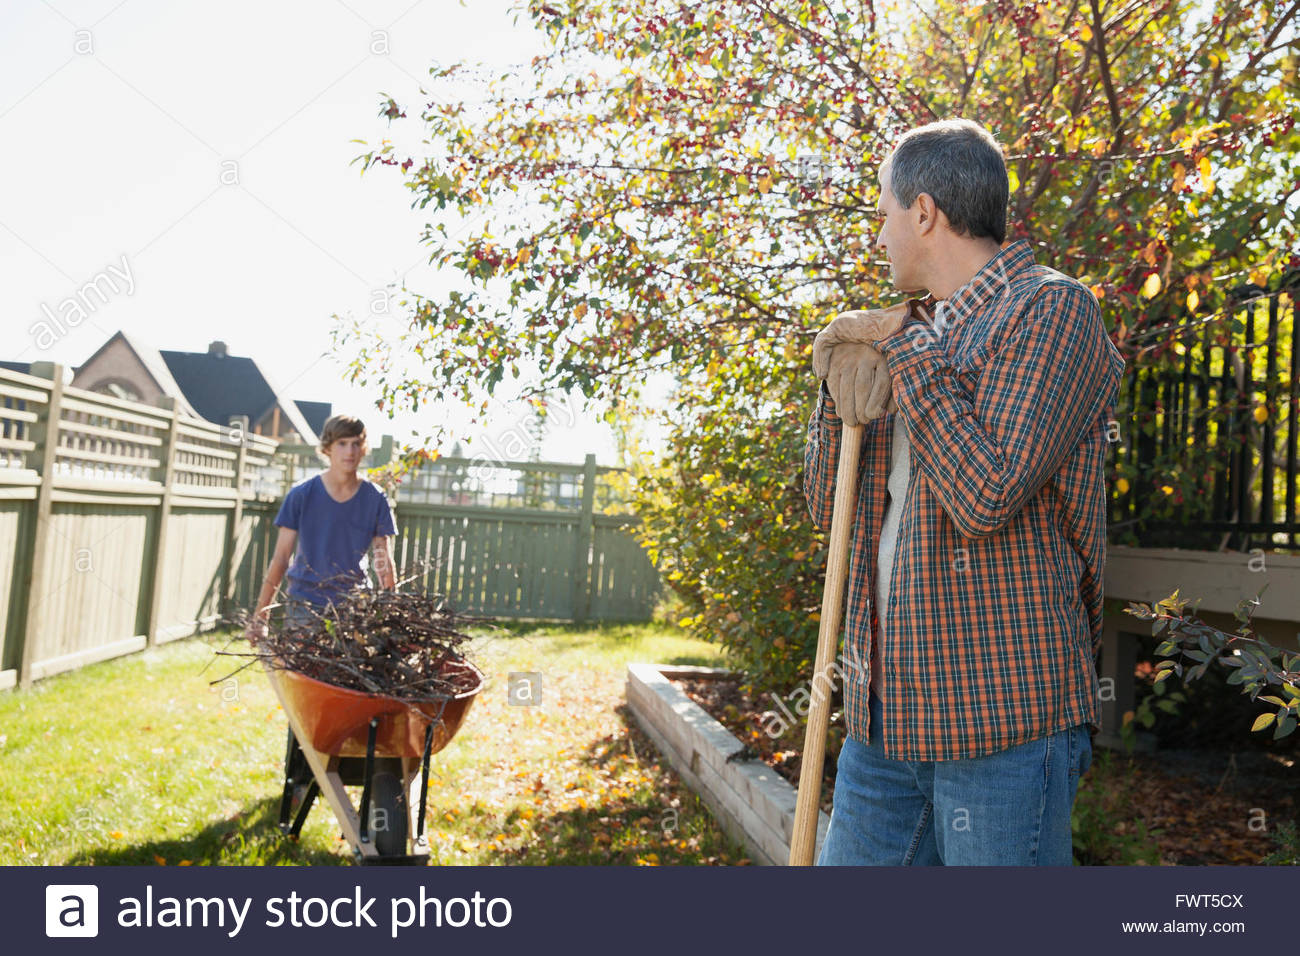 Father and son cleaning up yard together - Stock Image